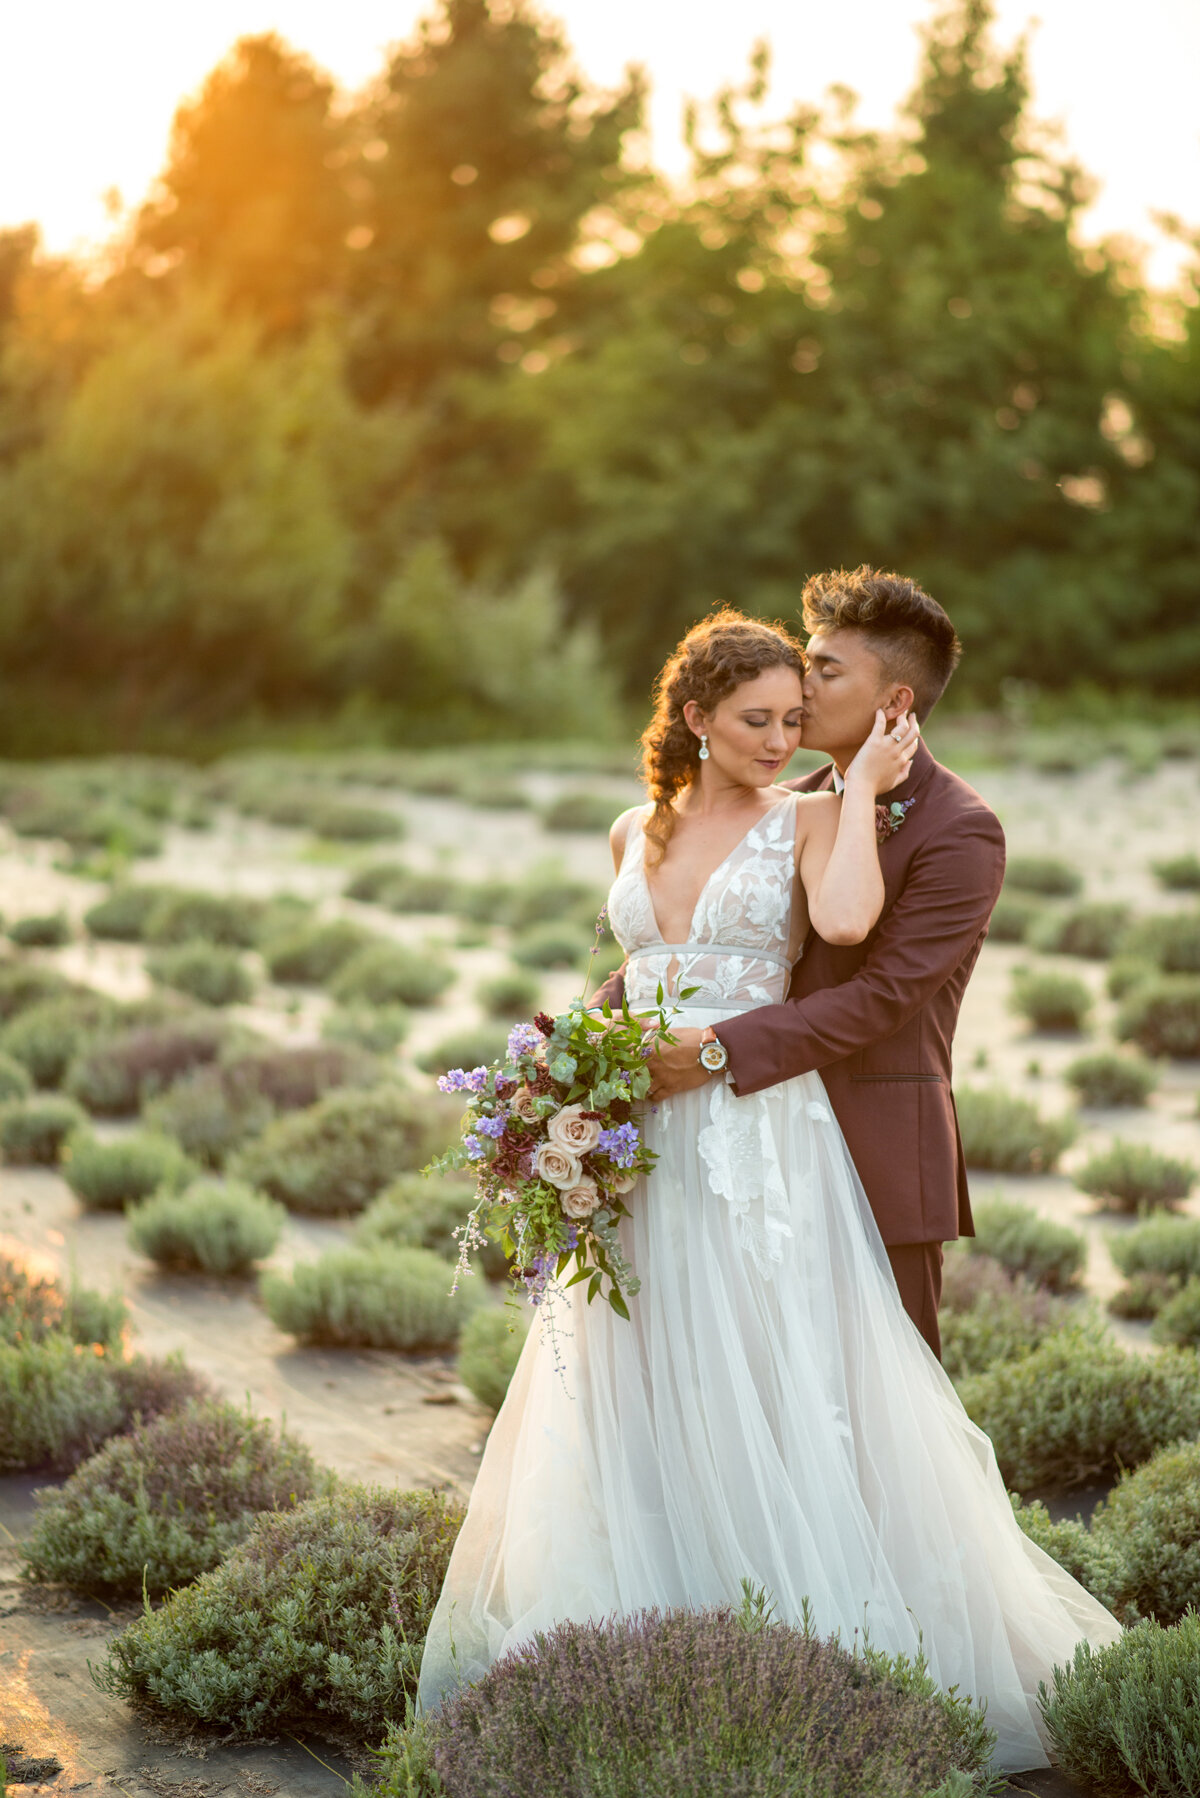 Styled shoot by  Kasey and Ben Photography  at Island Lavender at Historic Island Dairy.